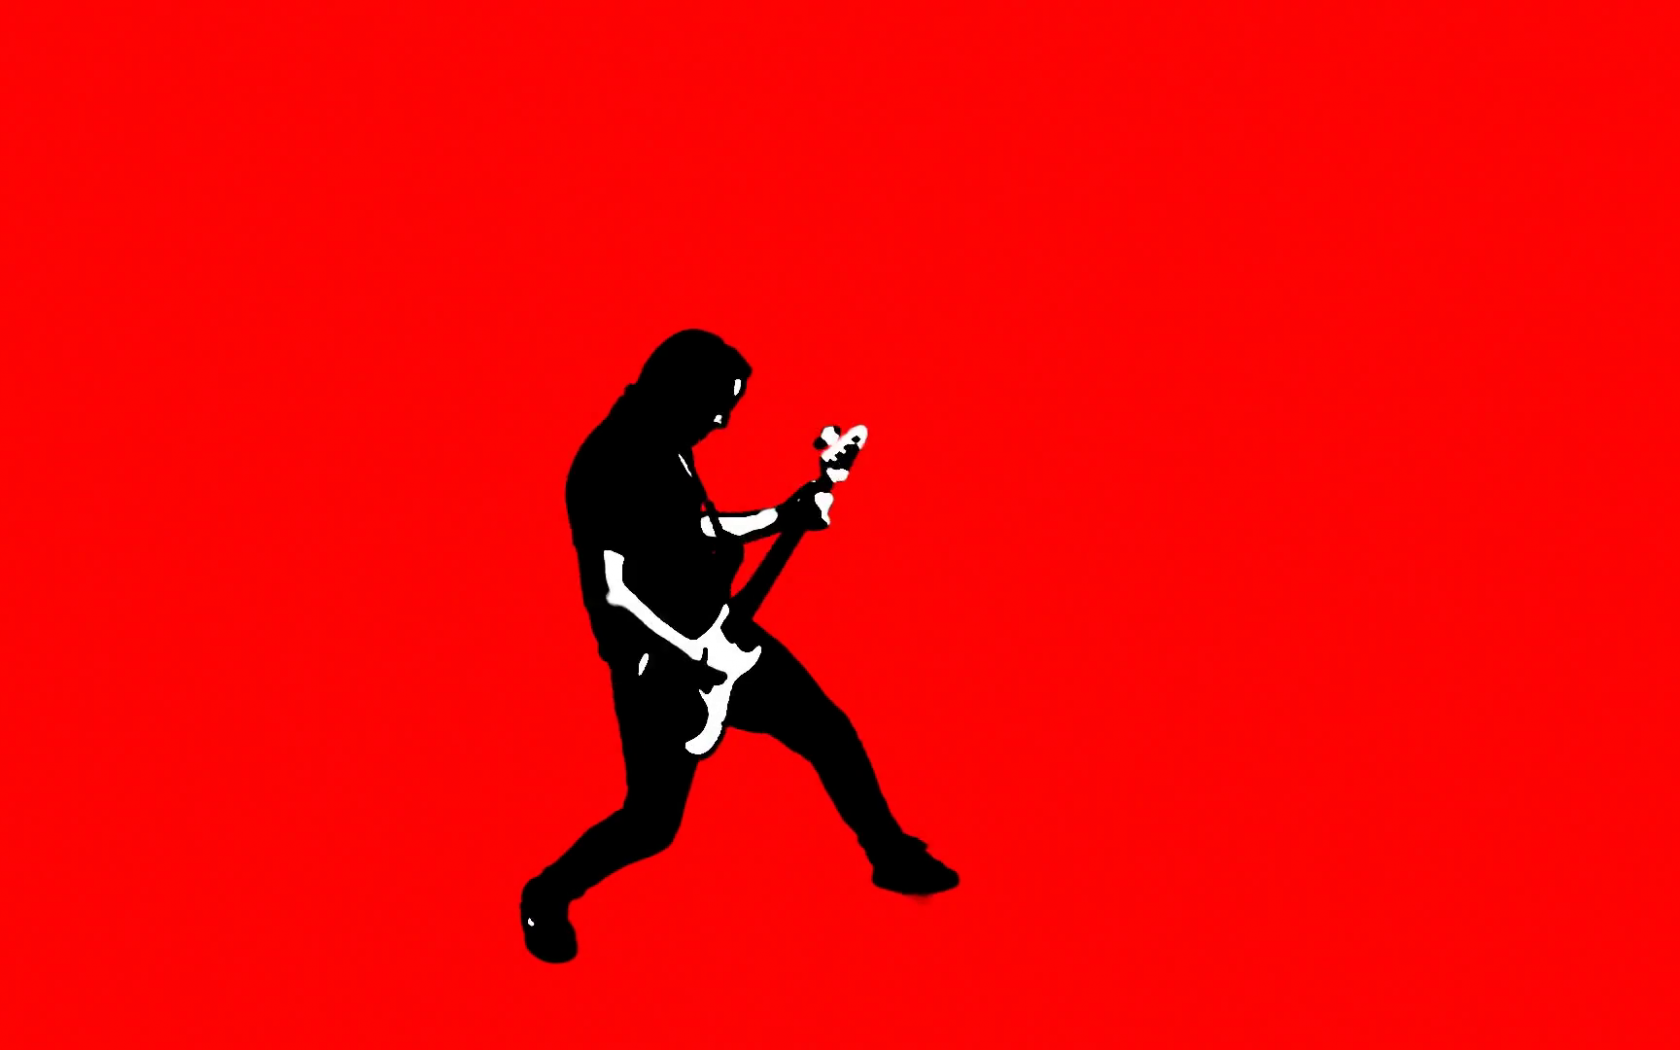 Free Download Rockstar Flipping His Guitar On Red Background Totally Awesome 1920x1080 For Your Desktop Mobile Tablet Explore 41 Rockstar Background Rockstar Games Wallpaper Rockstar Wallpaper Rockstar Wallpapers